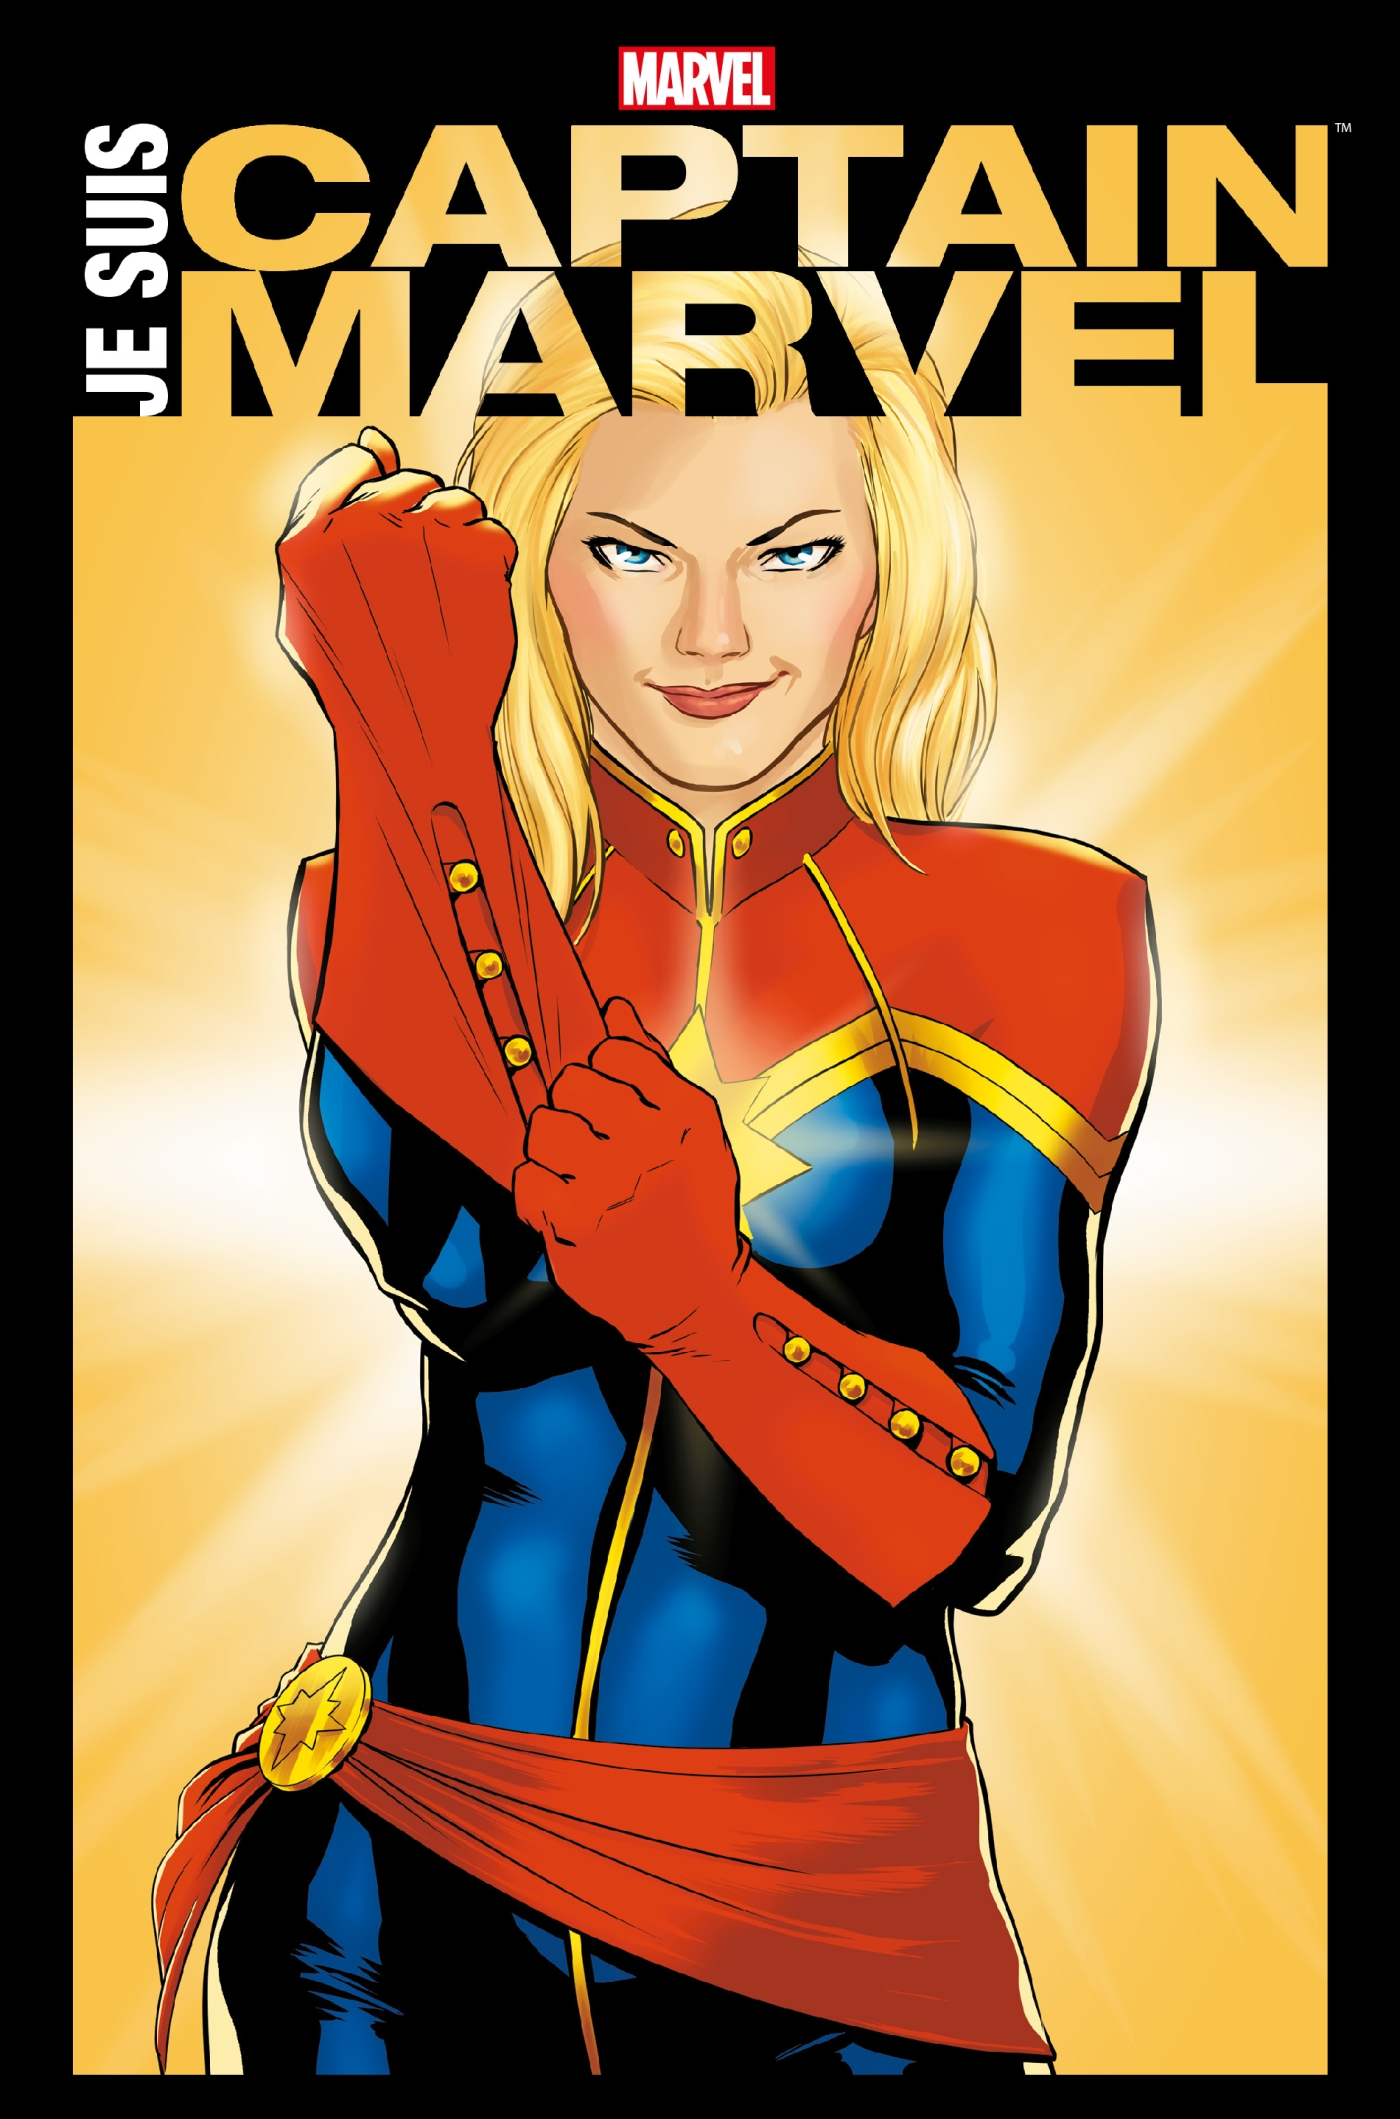 Image de couverture (Je suis Captain Marvel)